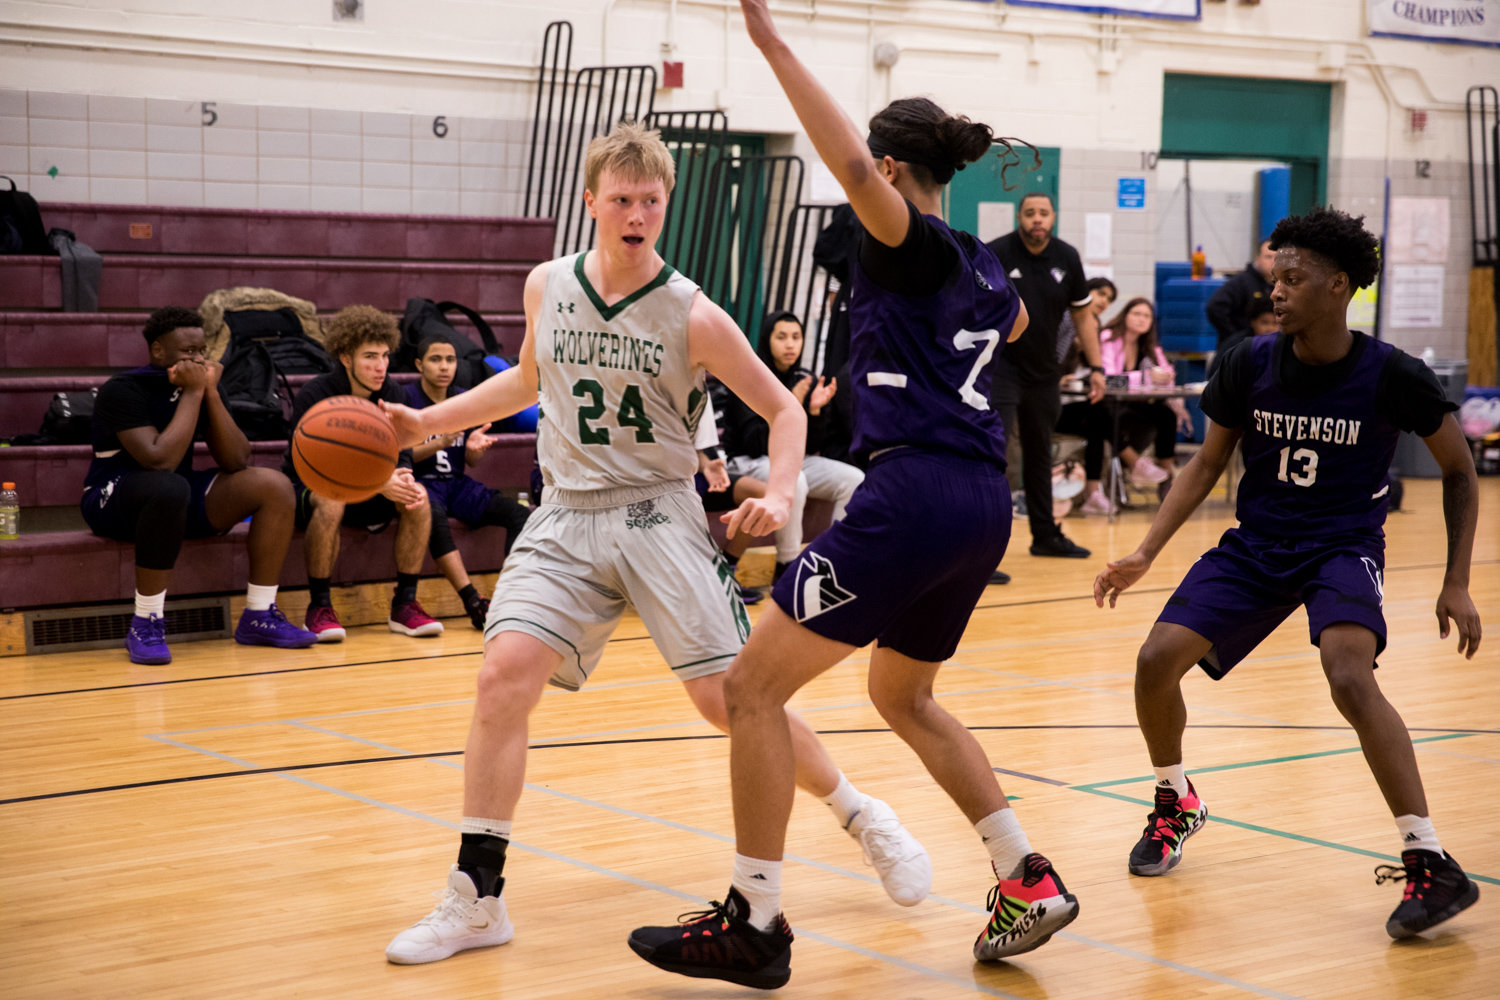 Bronx Science senior Kyle Catry turned in a team-high14-point performance against Stevenson, but it wasn't enough to avoid a seven-point loss to the Ambassadors.